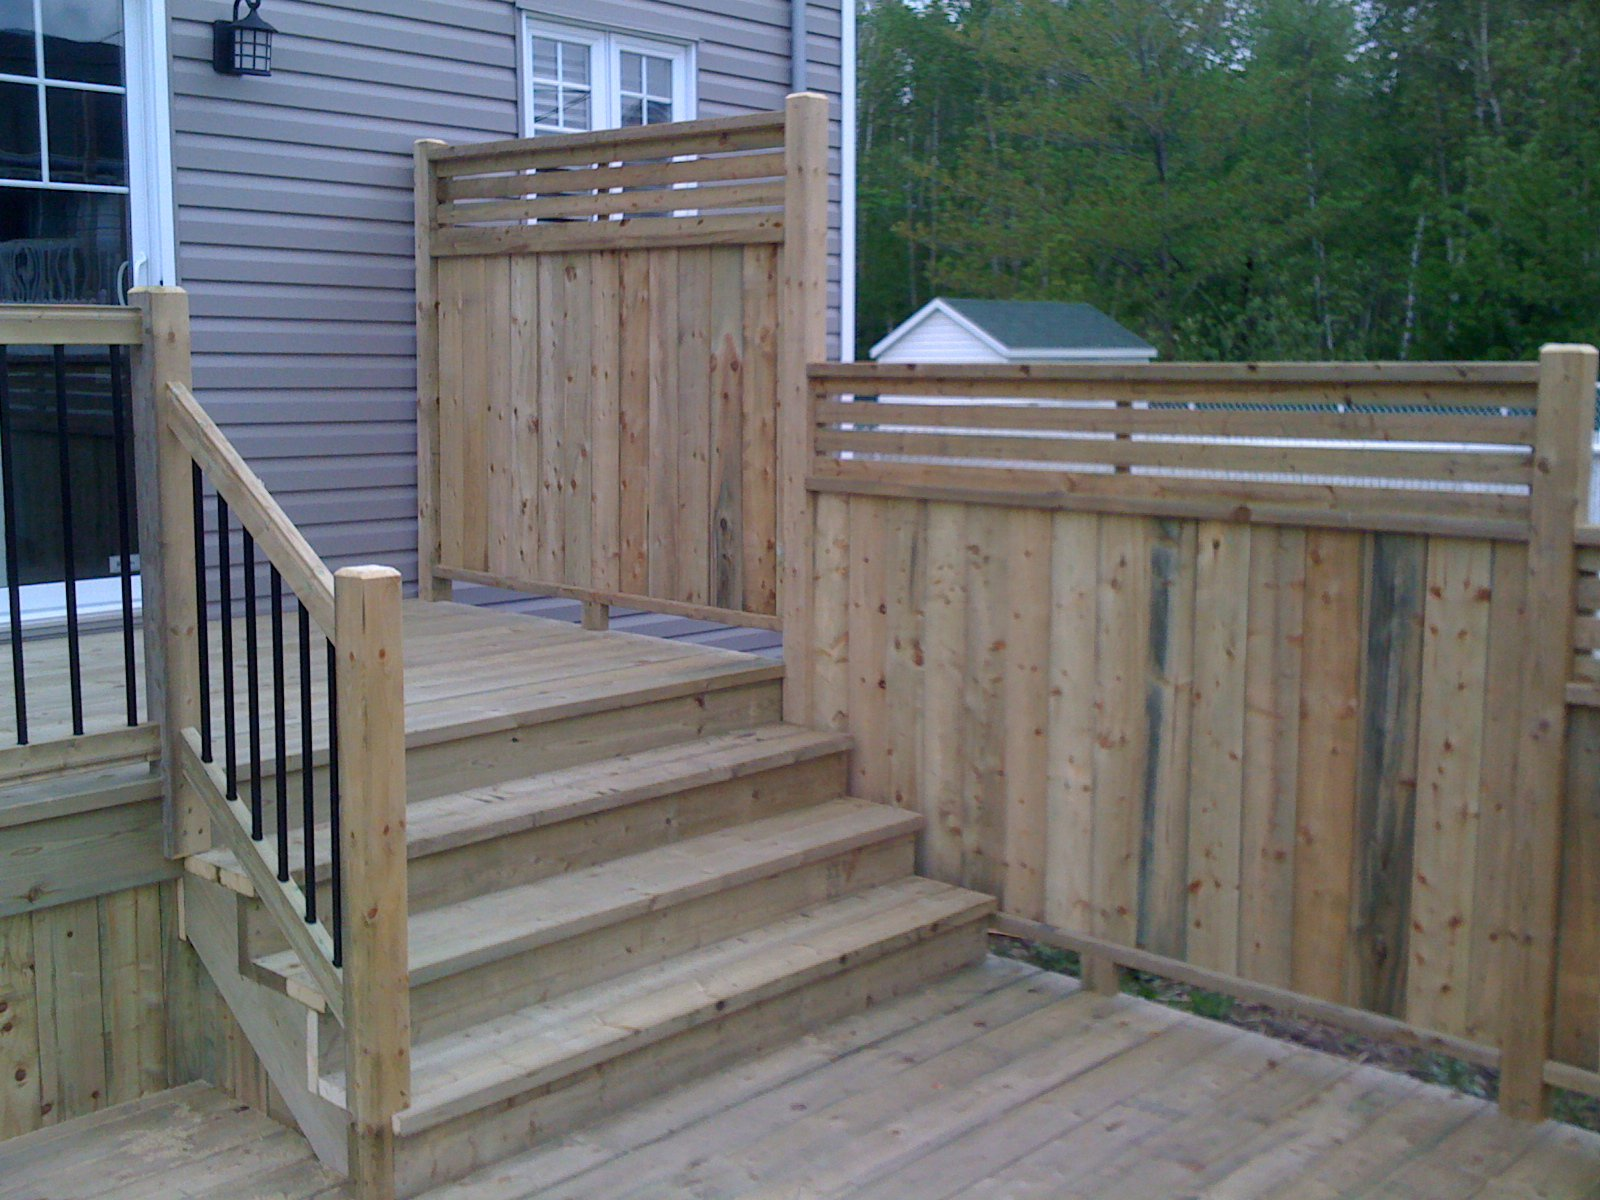 Patios multi paliers patio bois trait for Plan de patio exterieur en bois